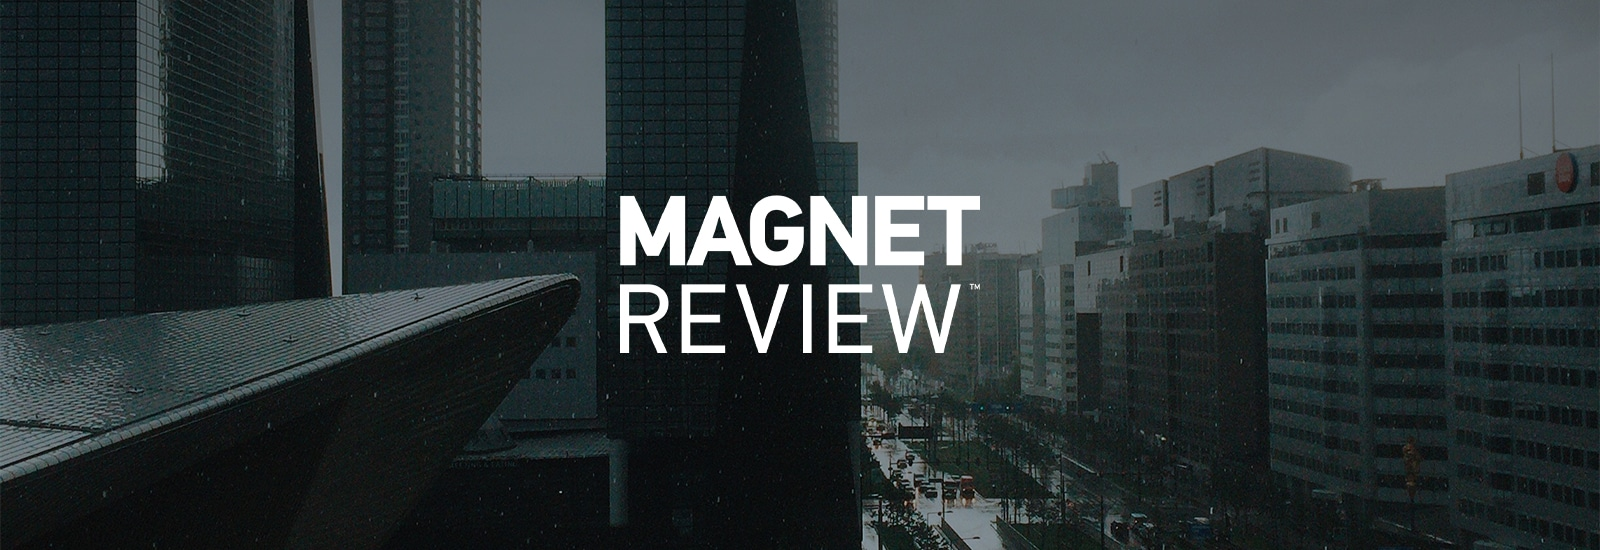 Magnet REVIEW